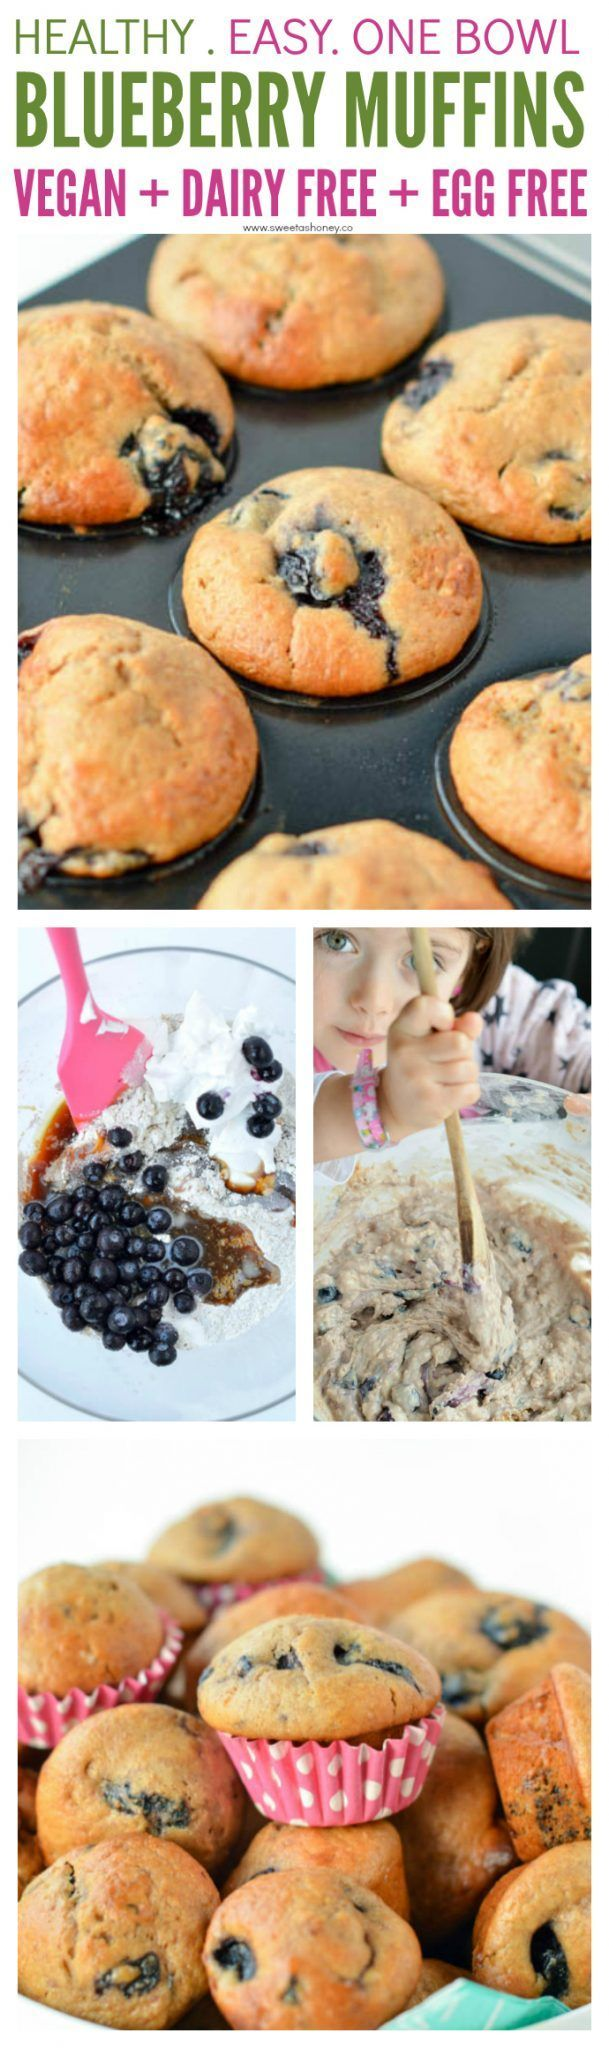 Easy Eggless Blueberry Muffins with yogurt using 100% dairy free coconut yogurt made from coconut cream. The best veganfood homemade muffins with no refined sugar, coconut oil and almond milk. A moist blueberry muffin ready in less than 20 minutes. If you are not vegan the recipe works with any yogurt like soy or Greek yogurt (if not vegan). #vegan #blueberry